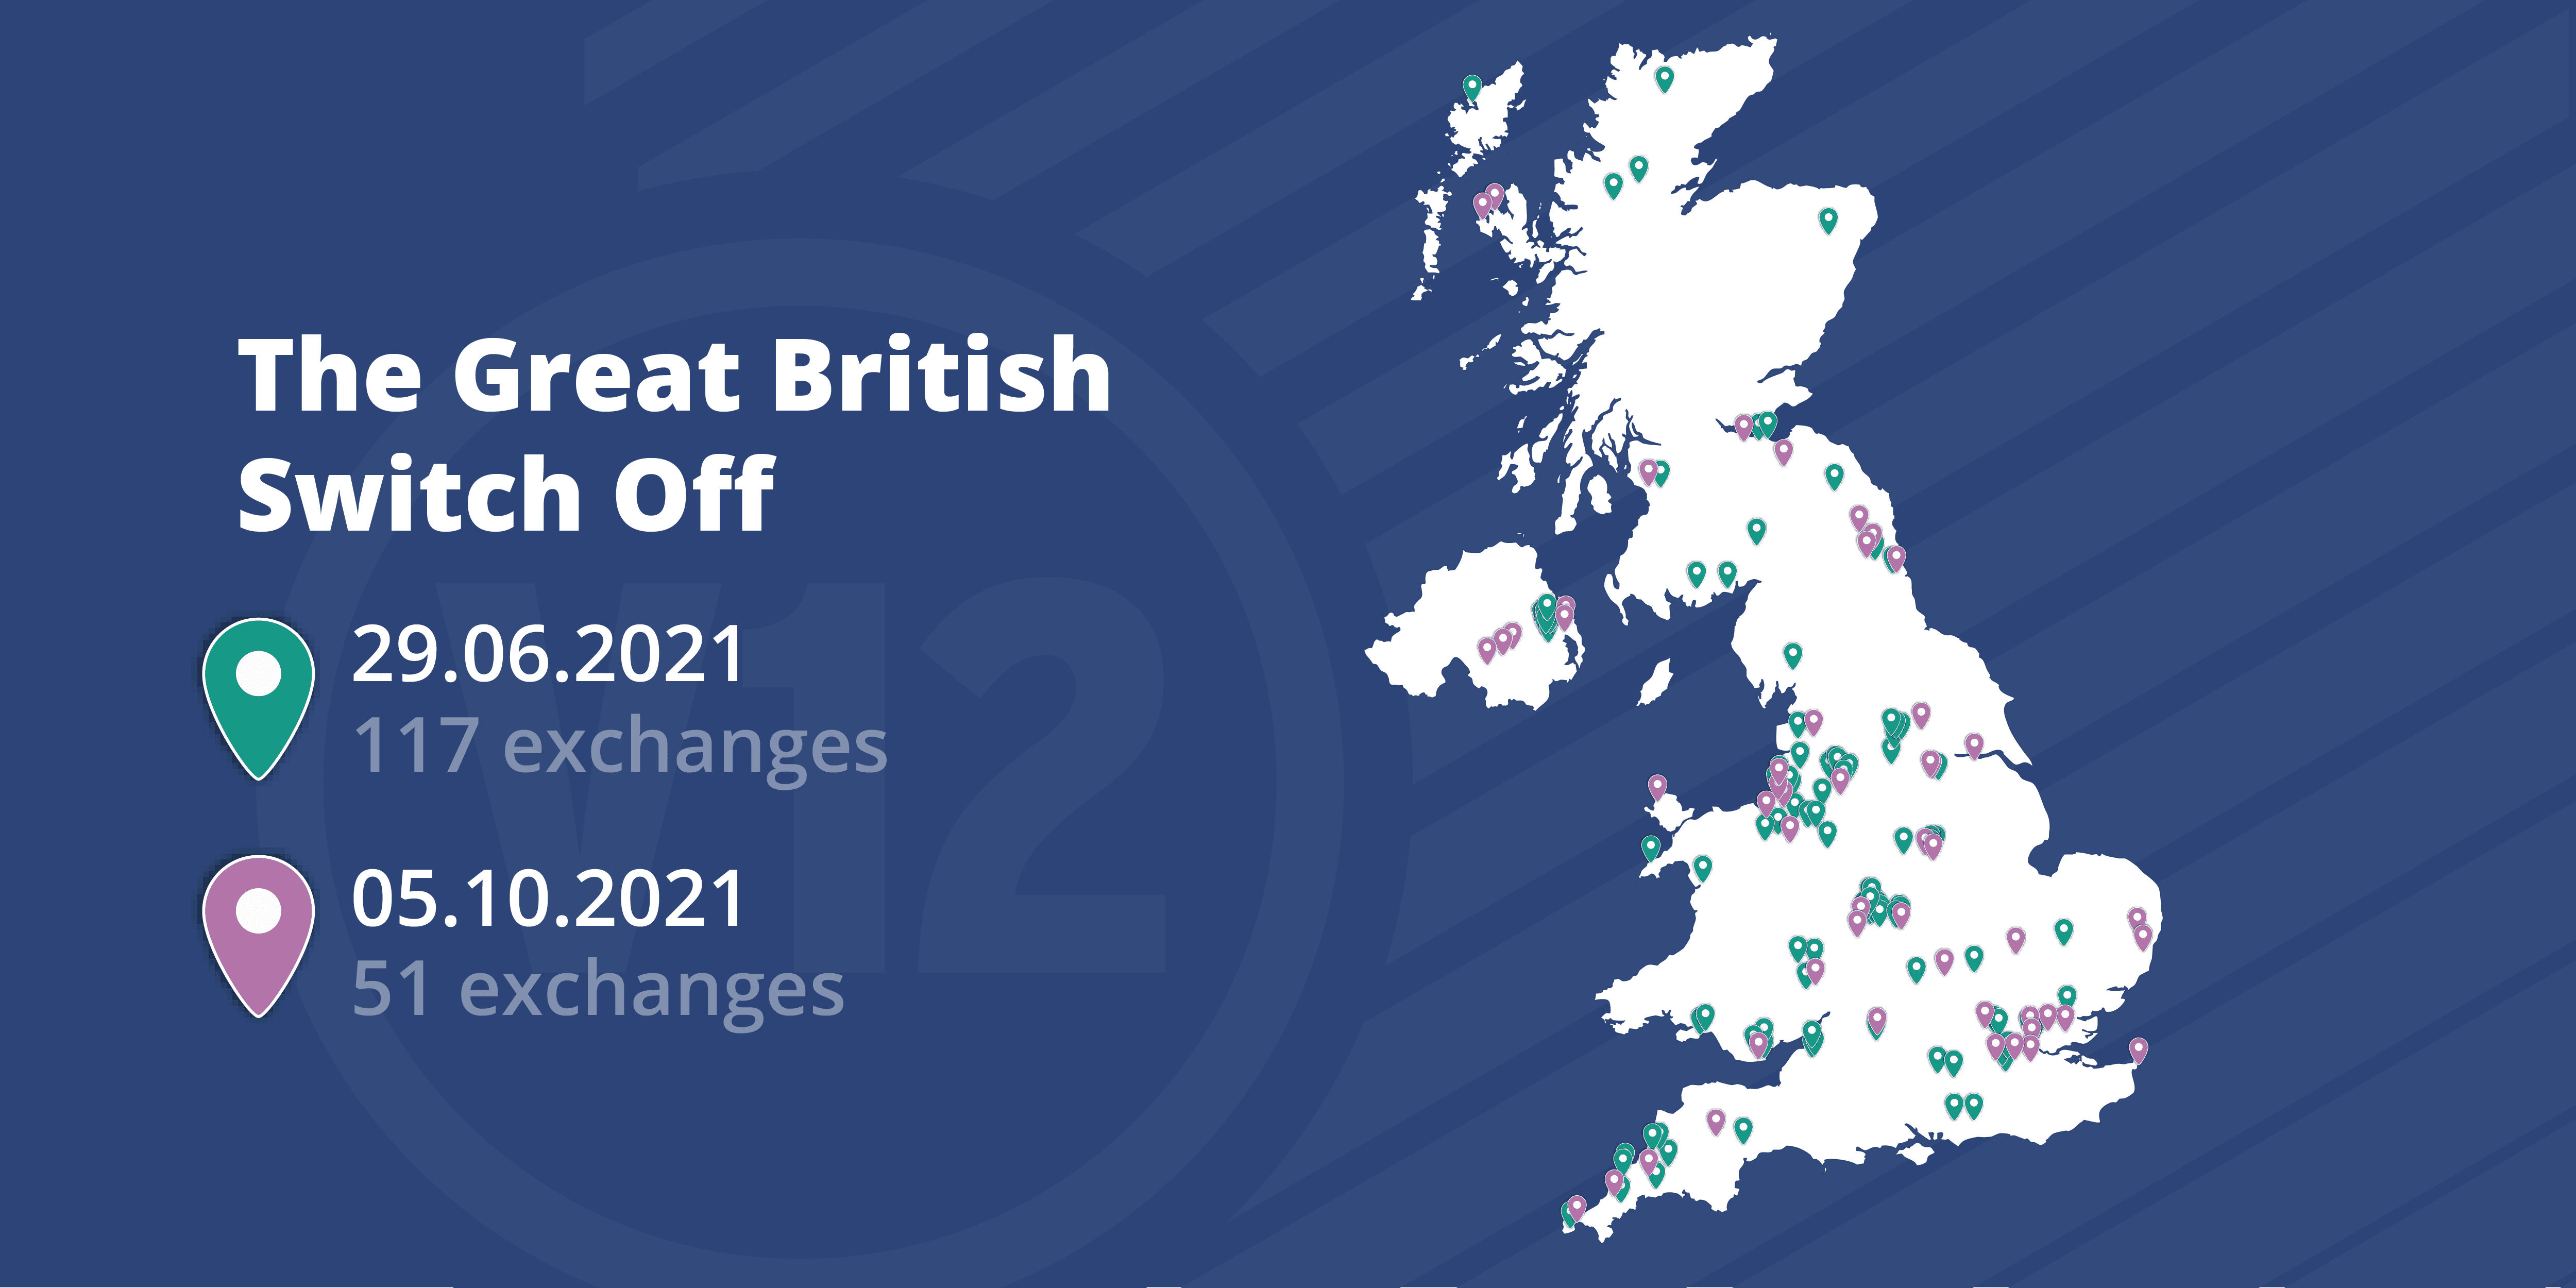 The Great British Switch Off